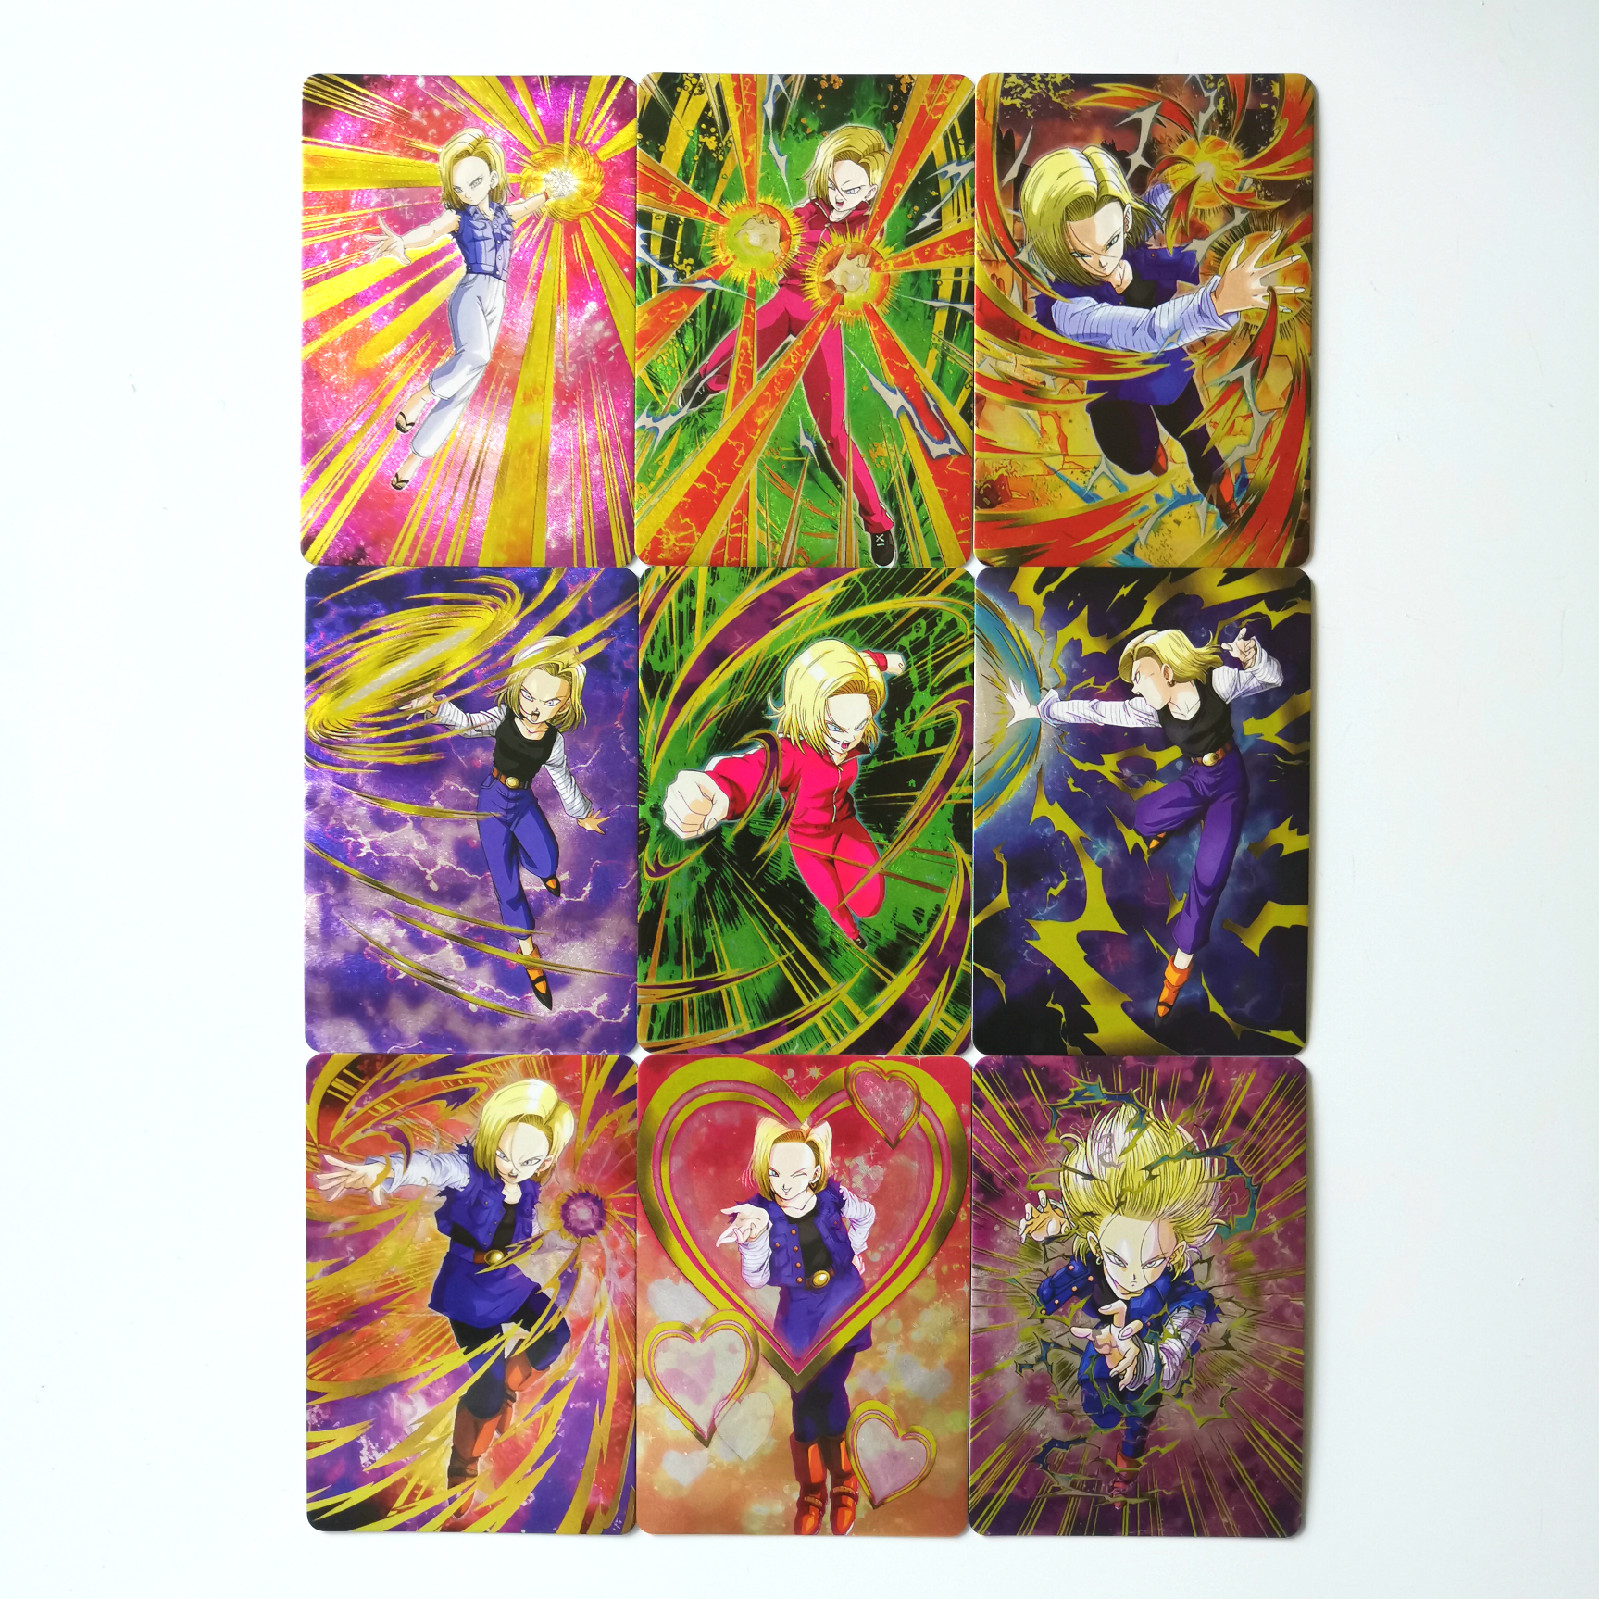 9pcs/set Android 18 Super Dragon Ball Z Heroes Thick Flash Battle Card Ultra Instinct Goku Vegeta Game Collection Cards